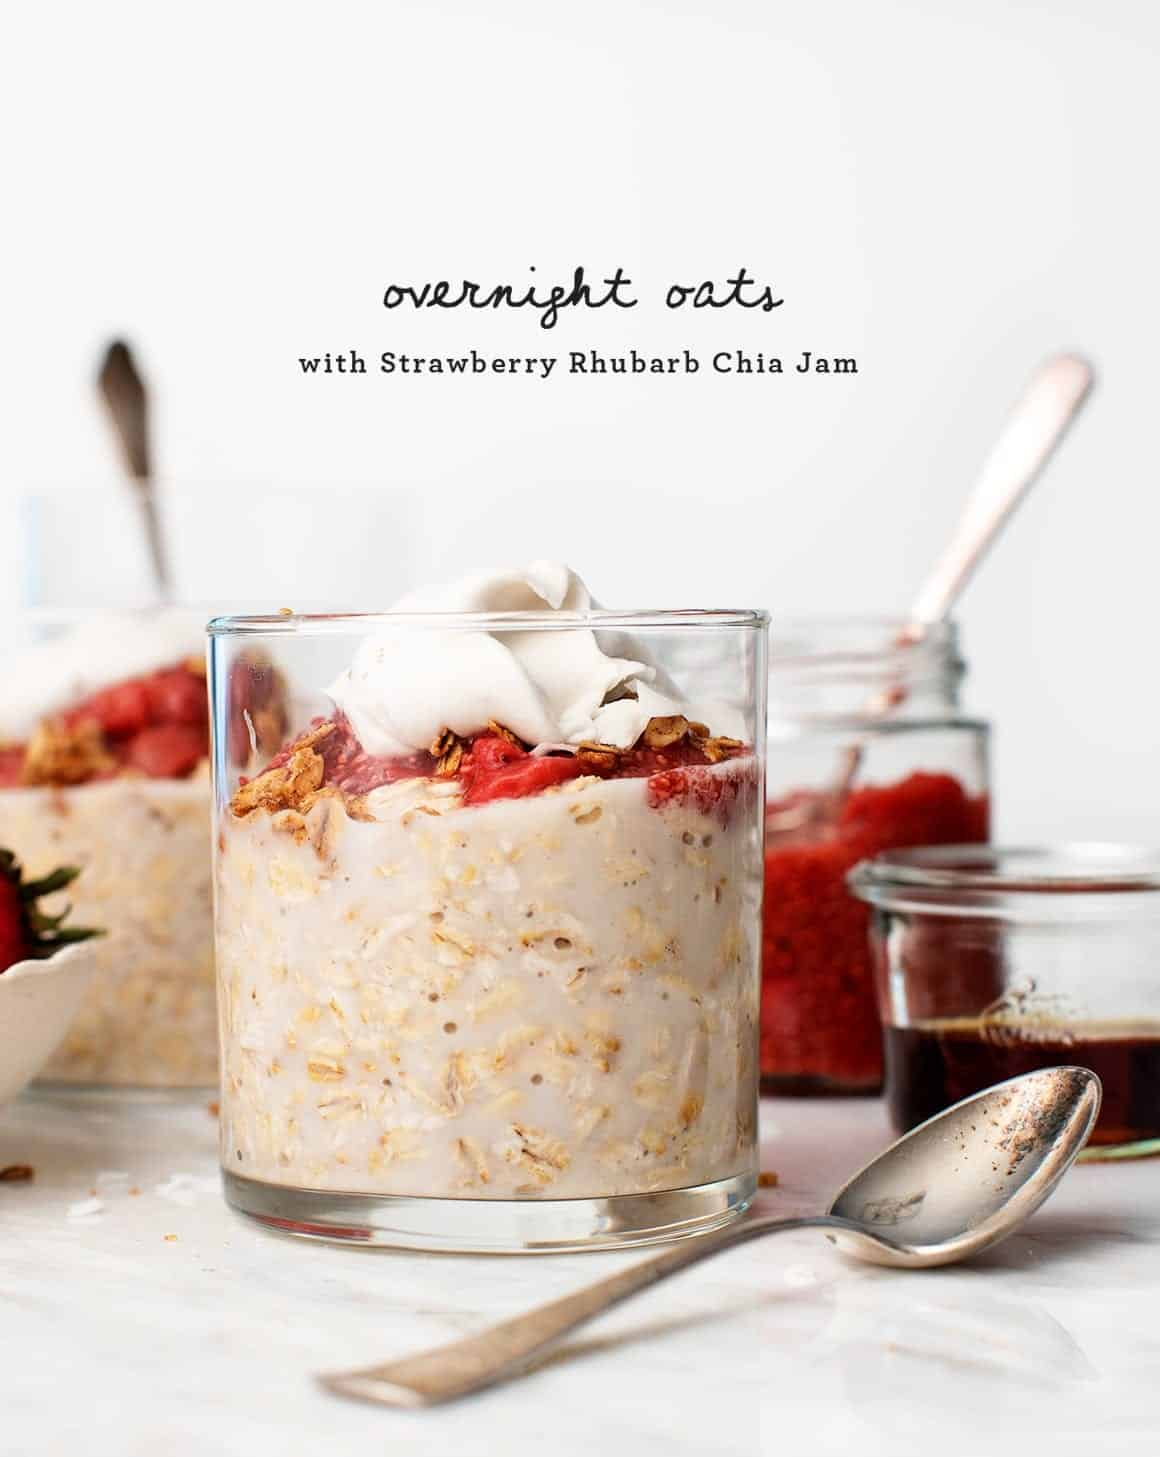 Strawberry Rhubarb Chia Overnight Oat Parfaits in jars with spoons